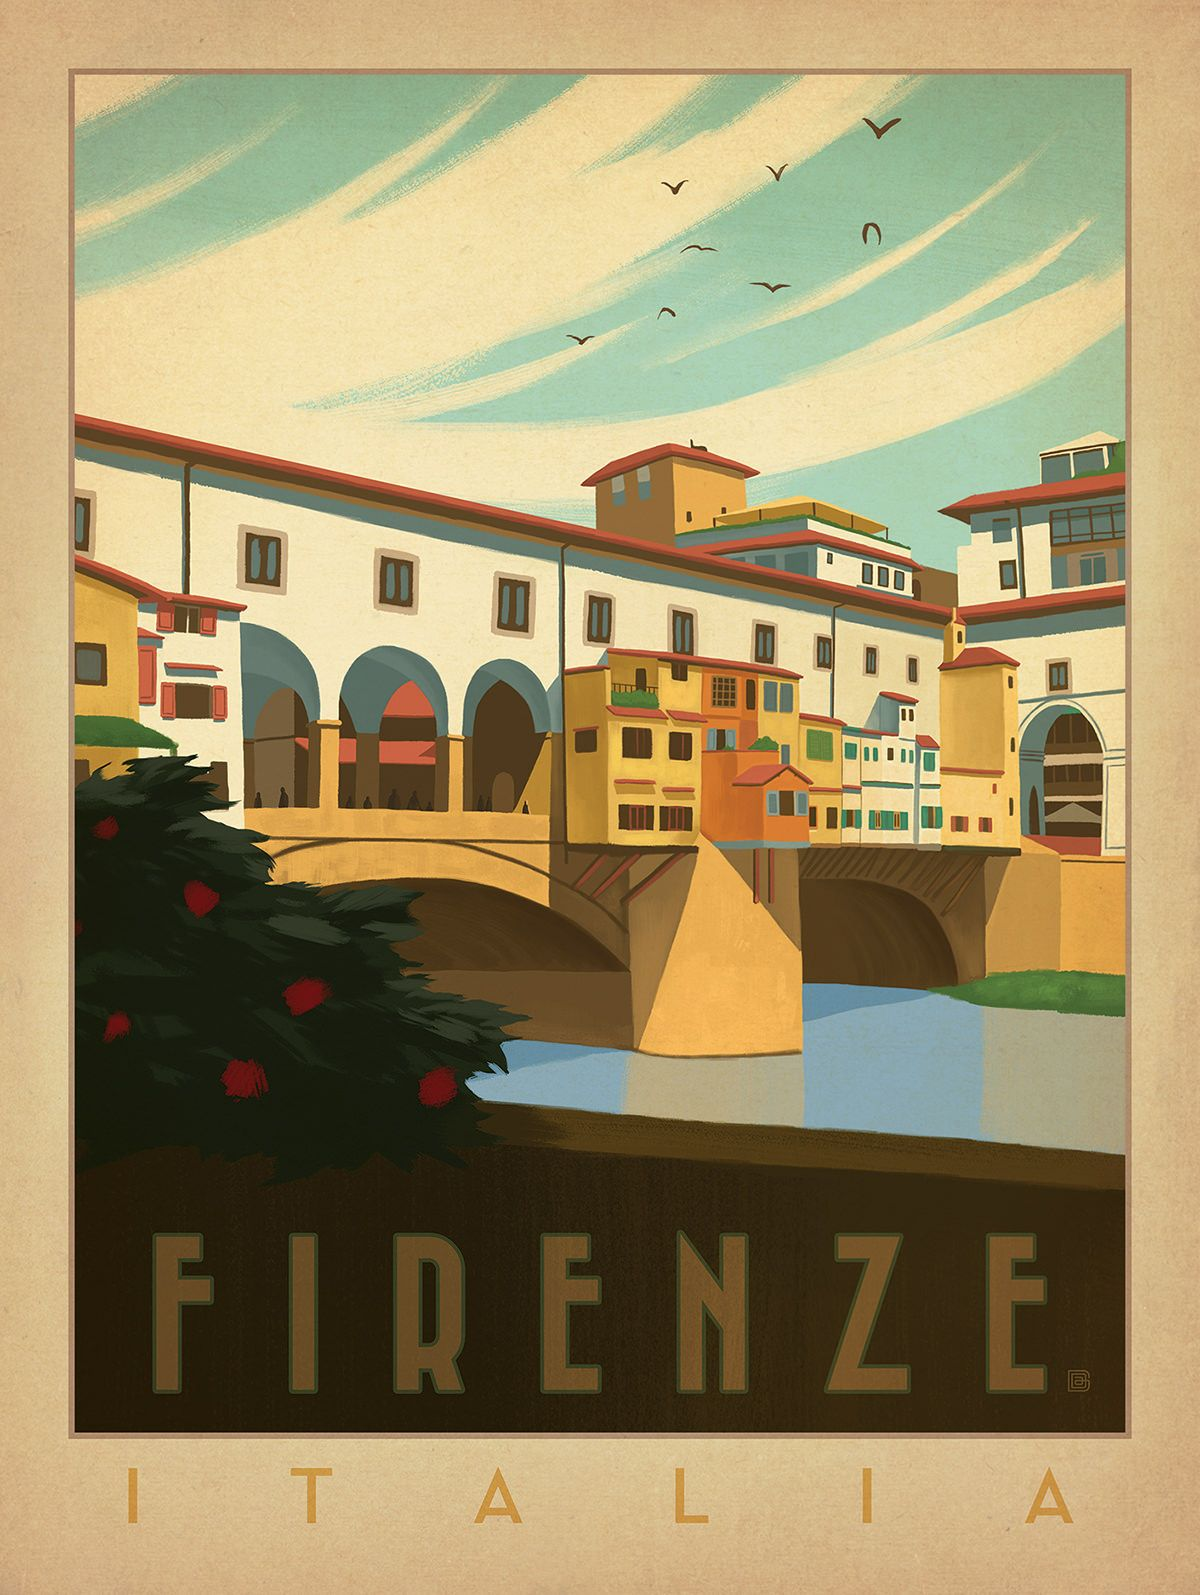 Pin By Anthony Caruso On Retro Travel Poster Vintage Travel Posters Travel Prints Vintage Travel